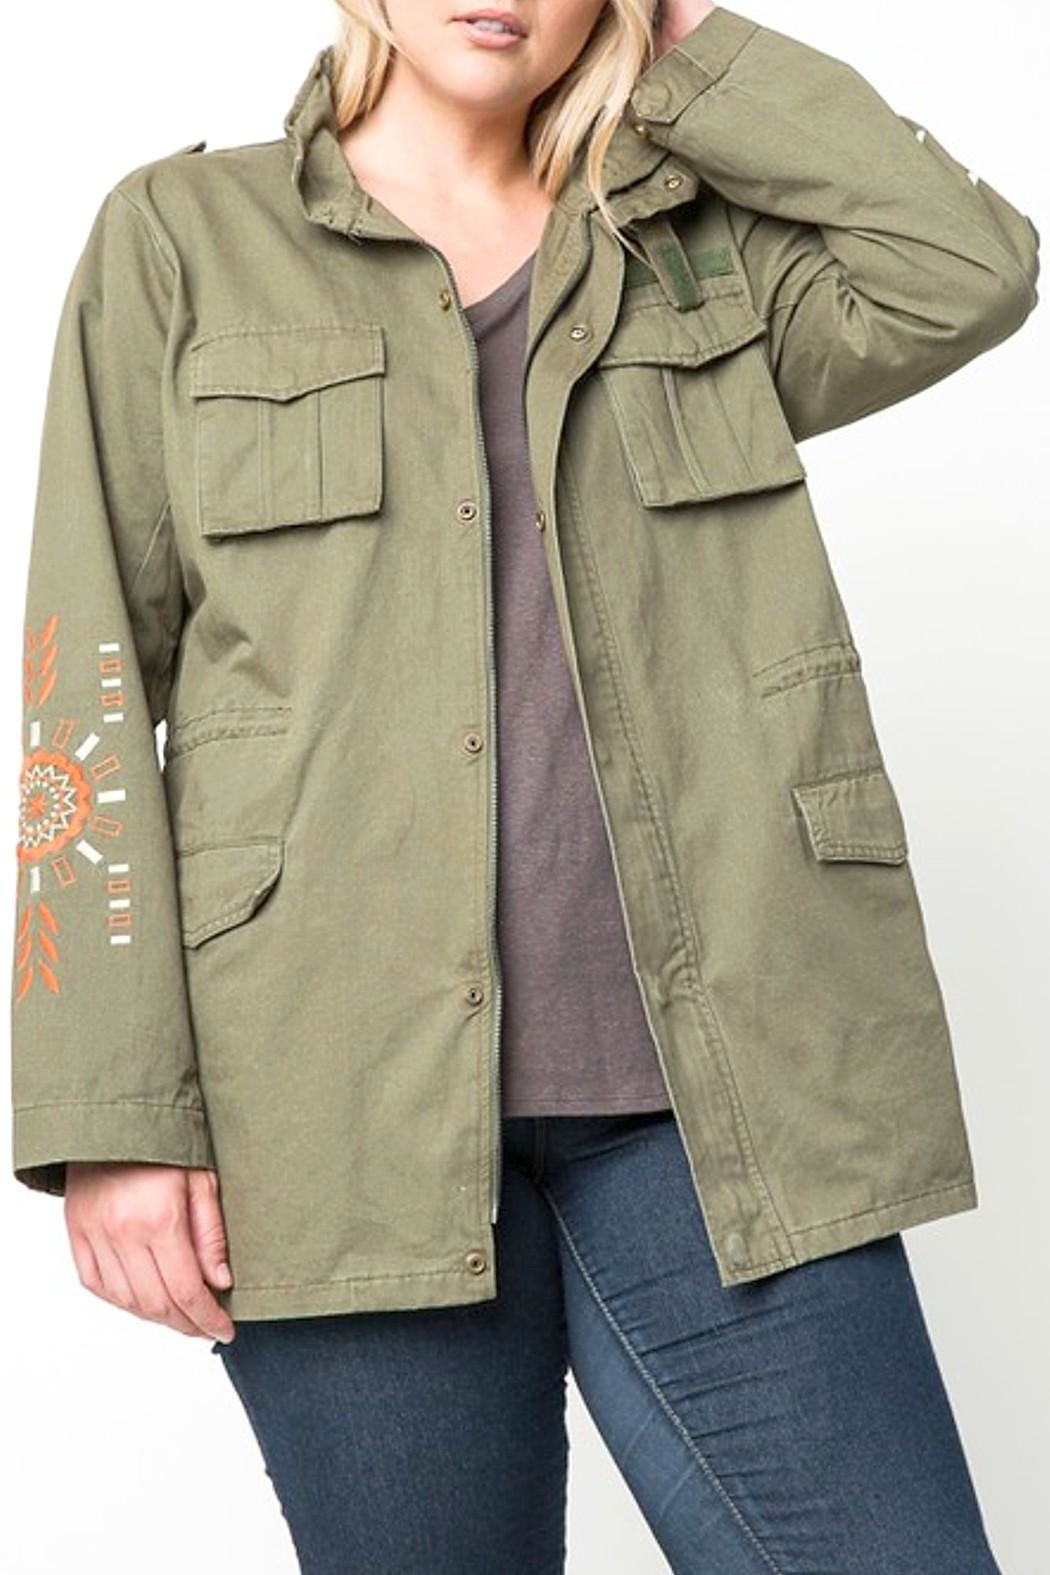 Hayden Los Angeles Southwest Embroidered Jacket - Main Image